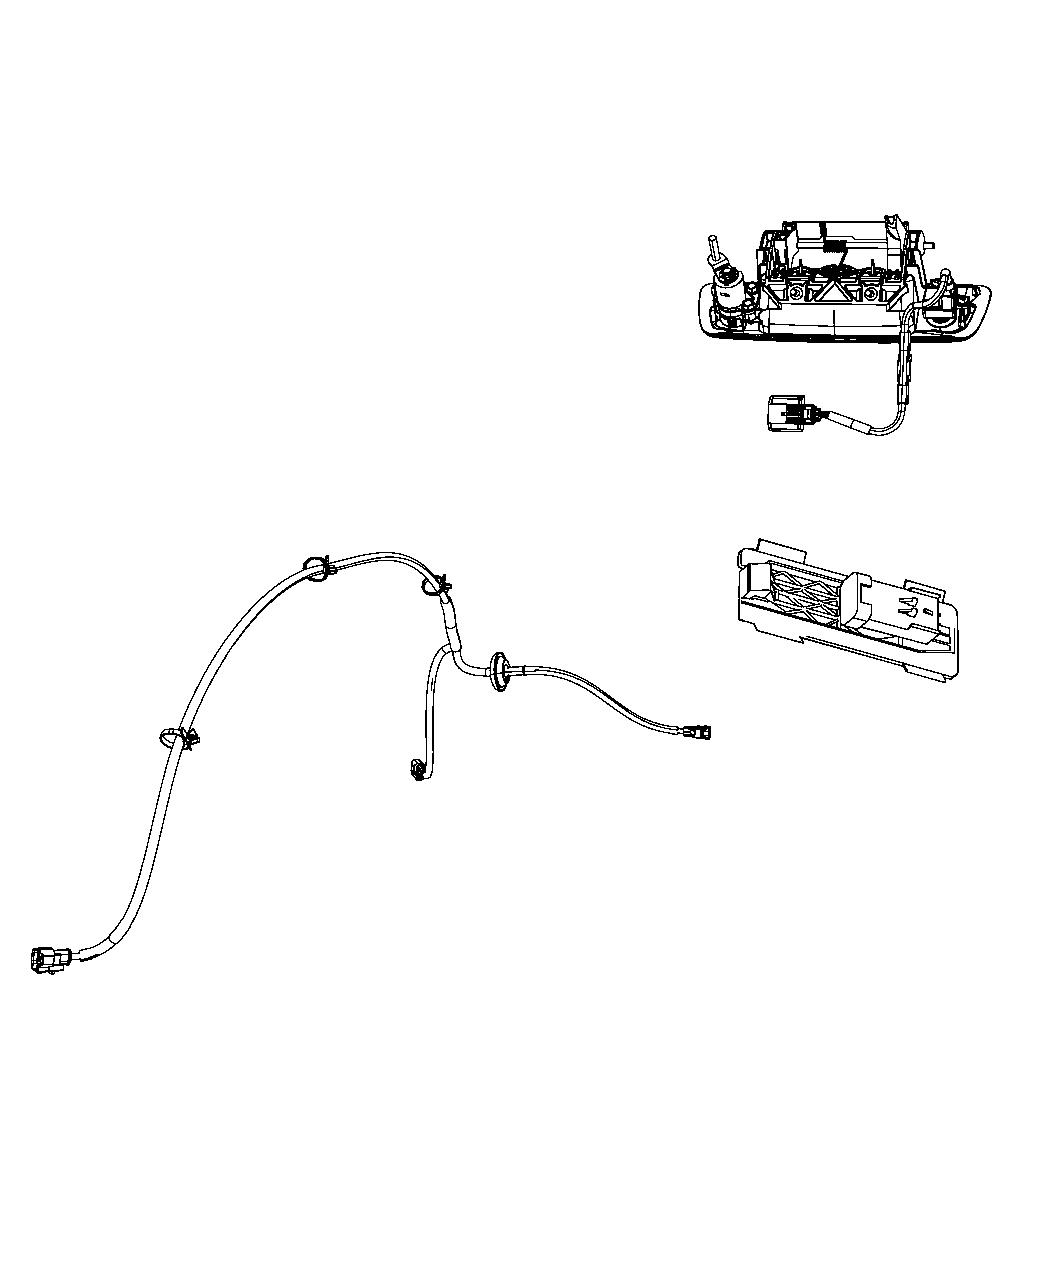 top suggestions chrysler dodge wiring diagram rear lights :